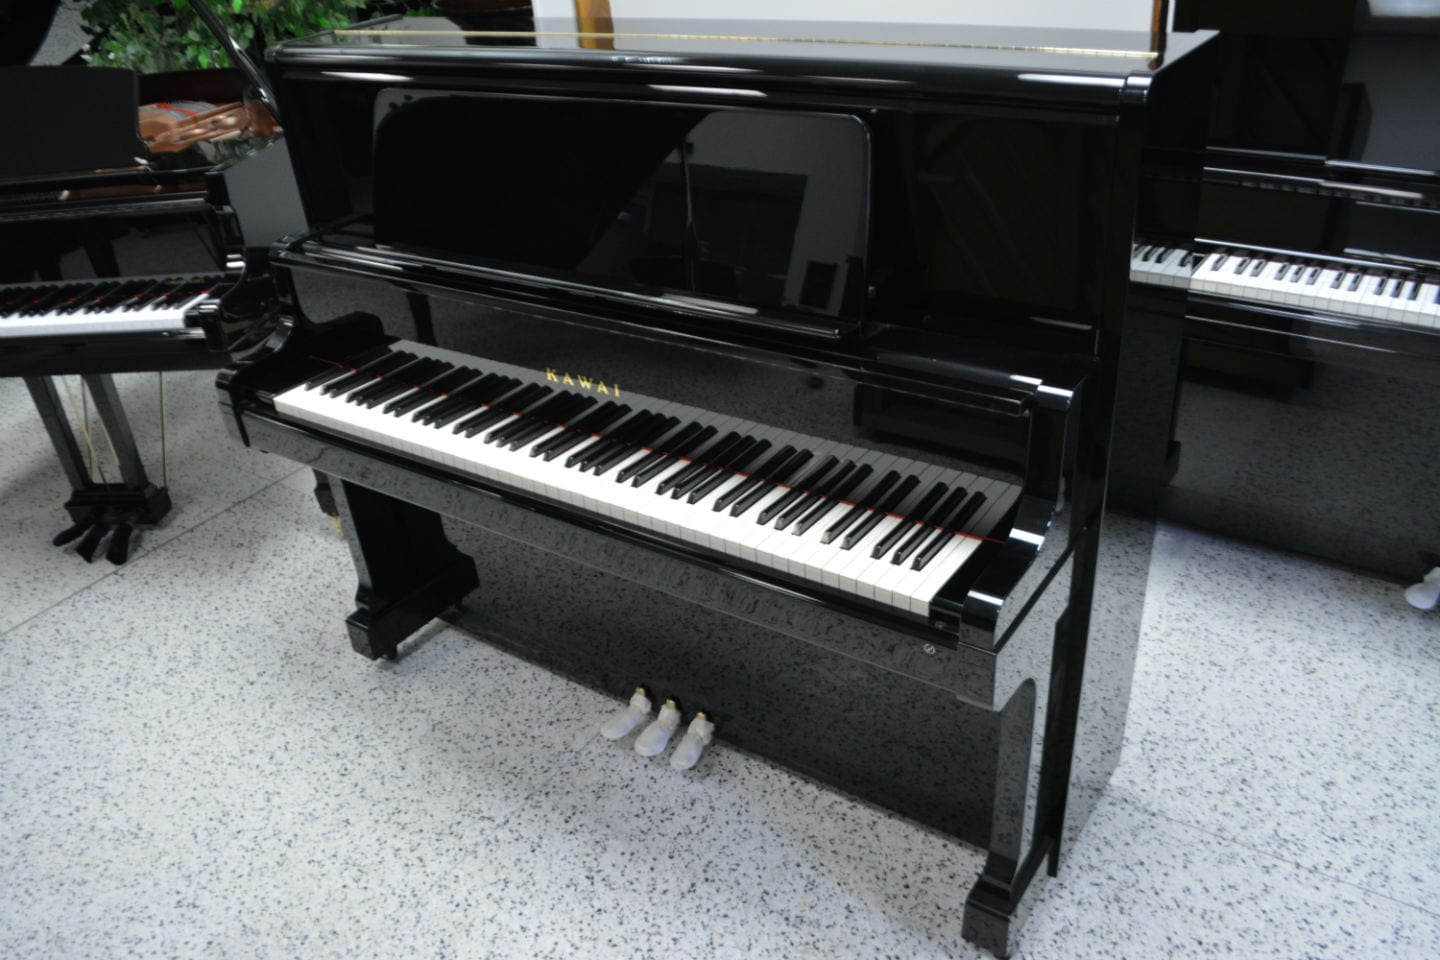 Kawai Upright Piano >> Kawai Us 5x Custom Upright Piano Minneapolis Music Store Schiller Steinway Kawai Pianos And More